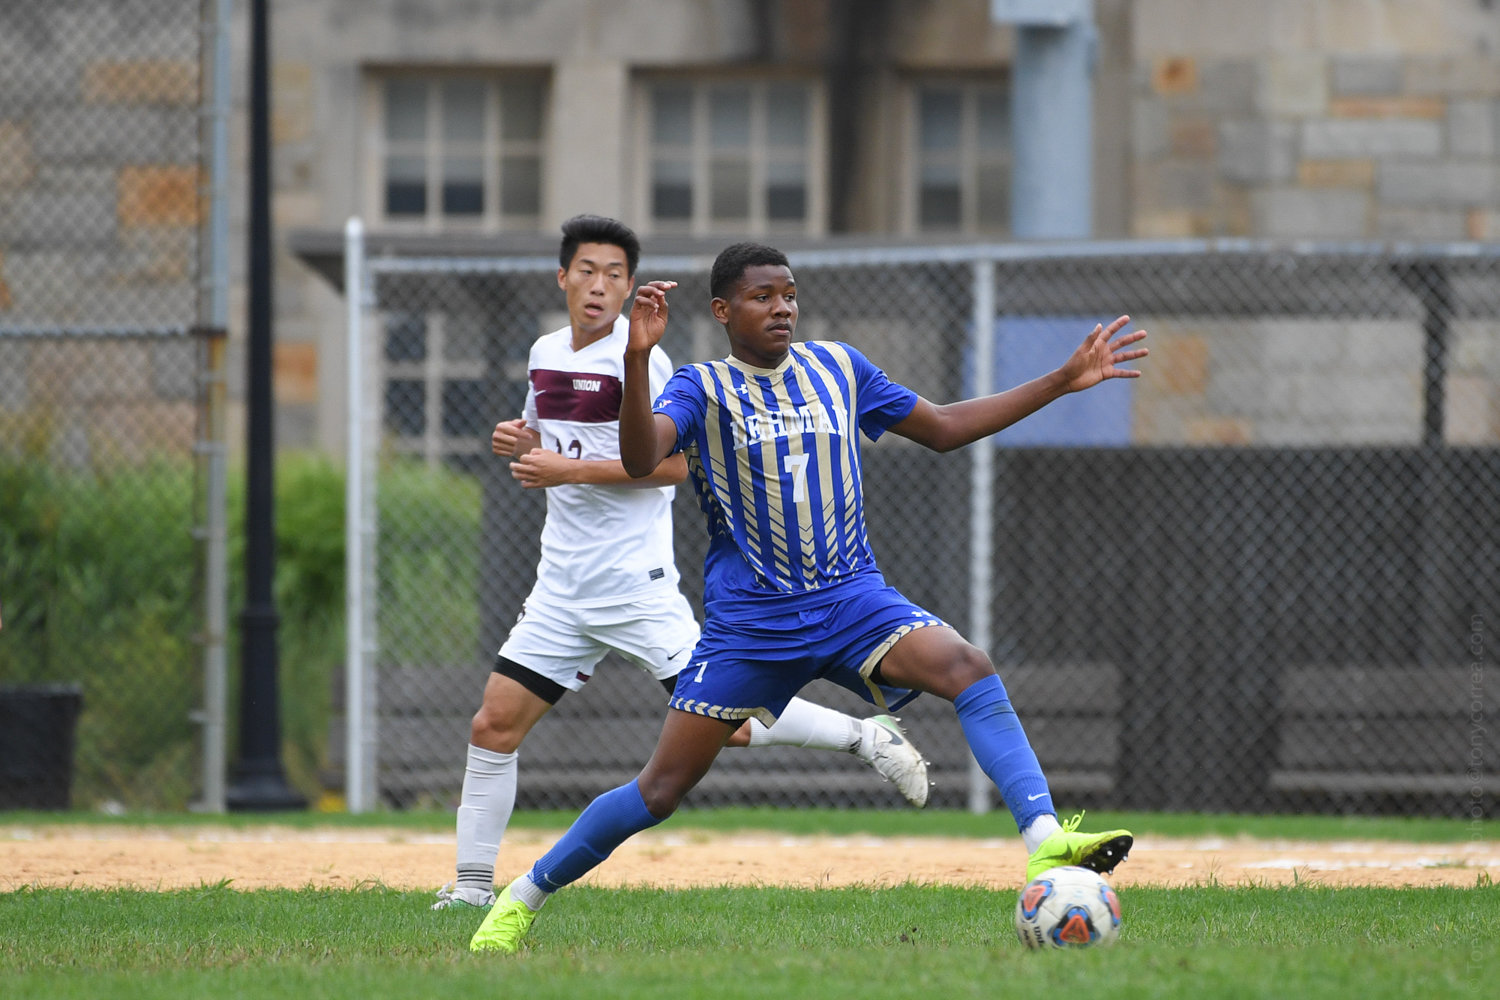 Mubarak Ouro's goal gave Lehman an early lead over John Jay in the CUNYAC semifinals last week. But the Bloodhounds rallied to win and move on to the championship game.